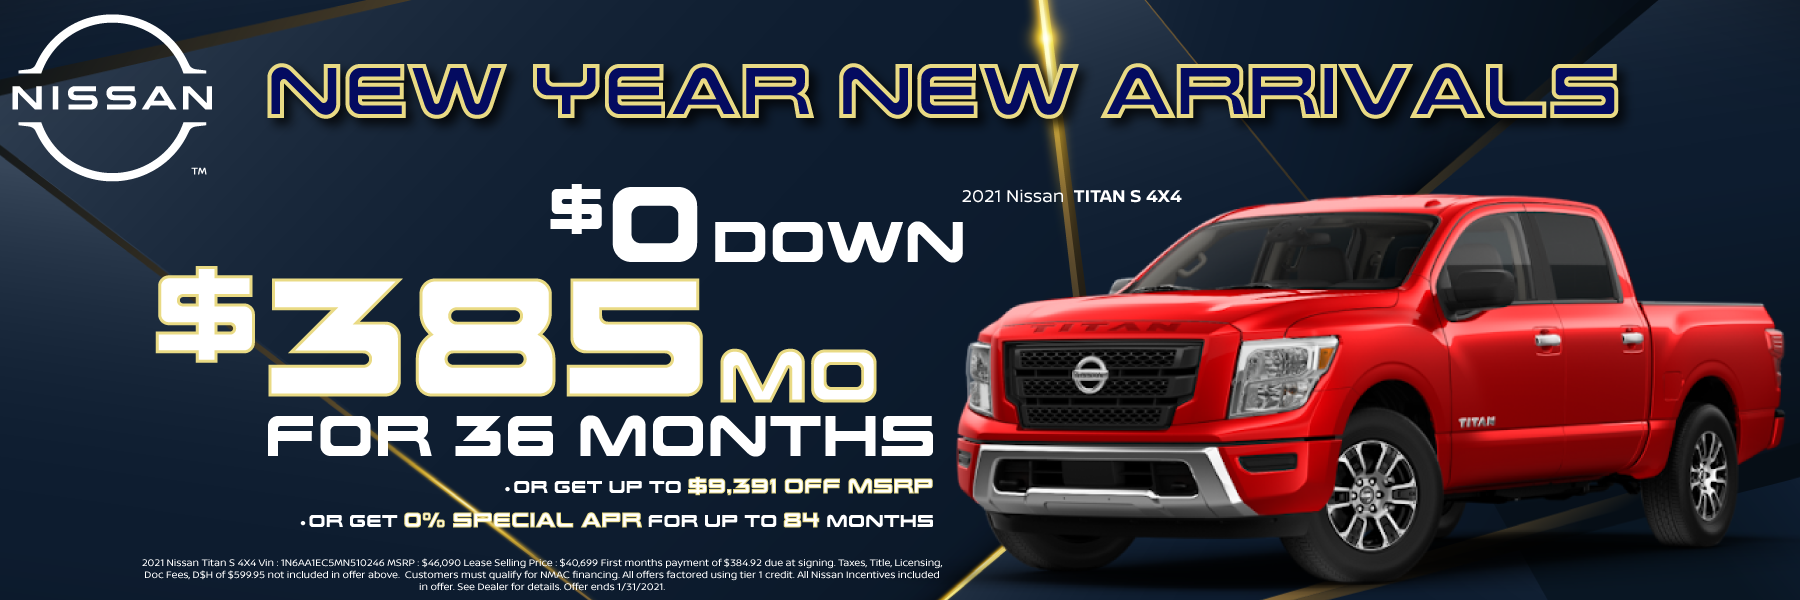 2021 Nissan Titan Lease and Purchase Offers